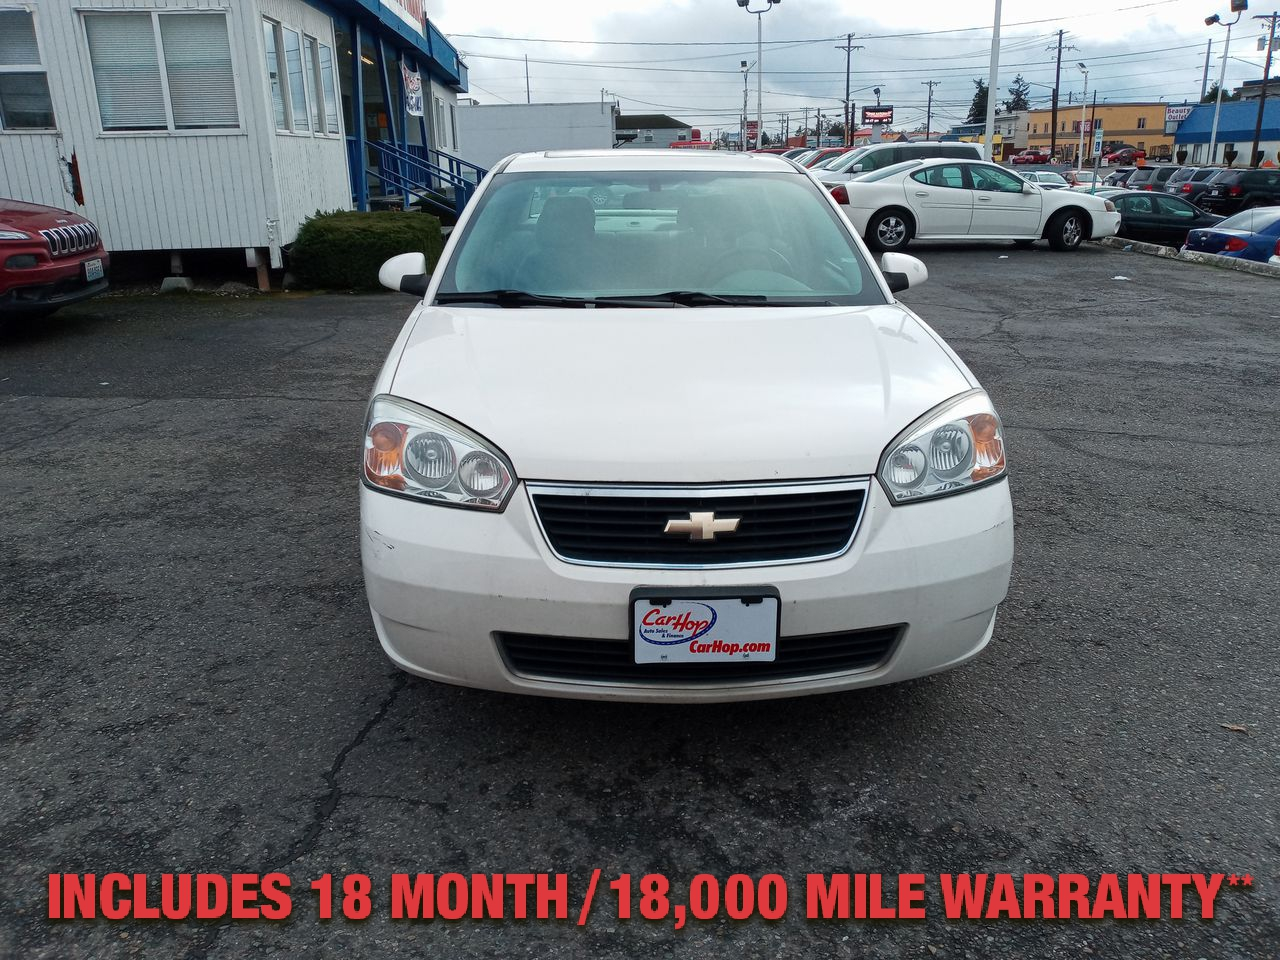 Pre-Owned 2006 CHEVROLET MALIBU LT Sedan 4